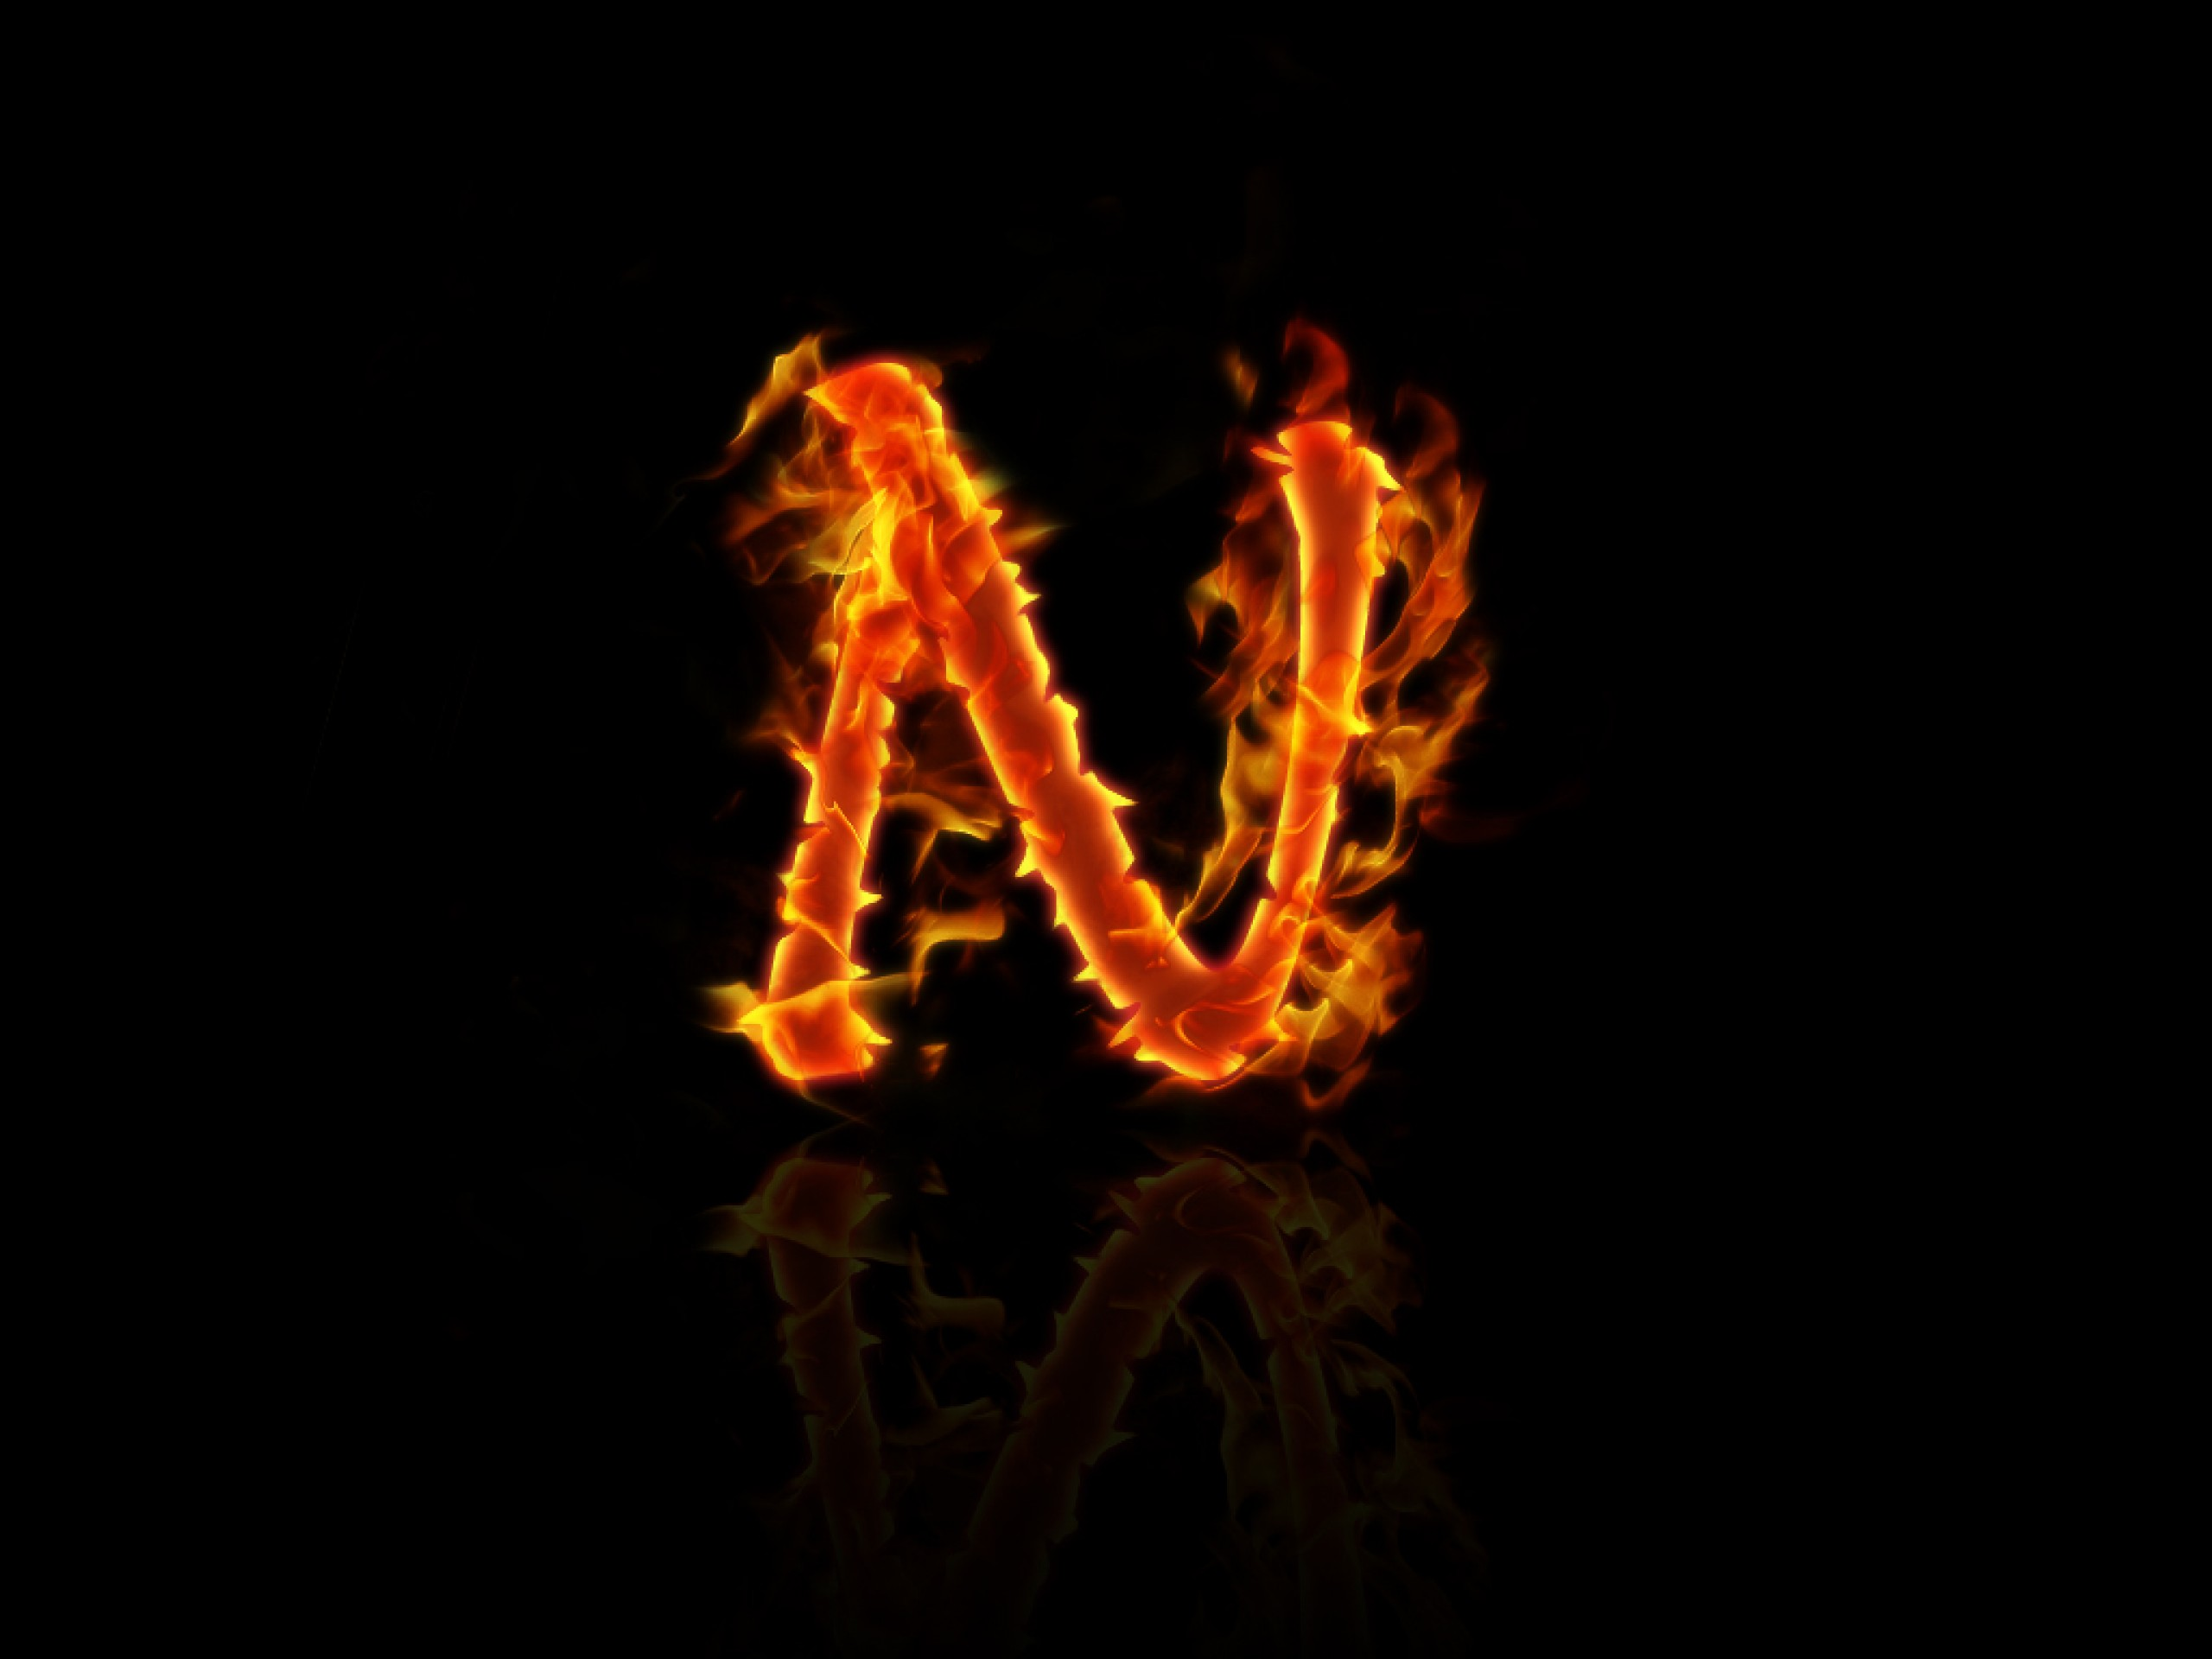 Alphabet b in Heart images  Hd Image Galleries on Hdimagelib